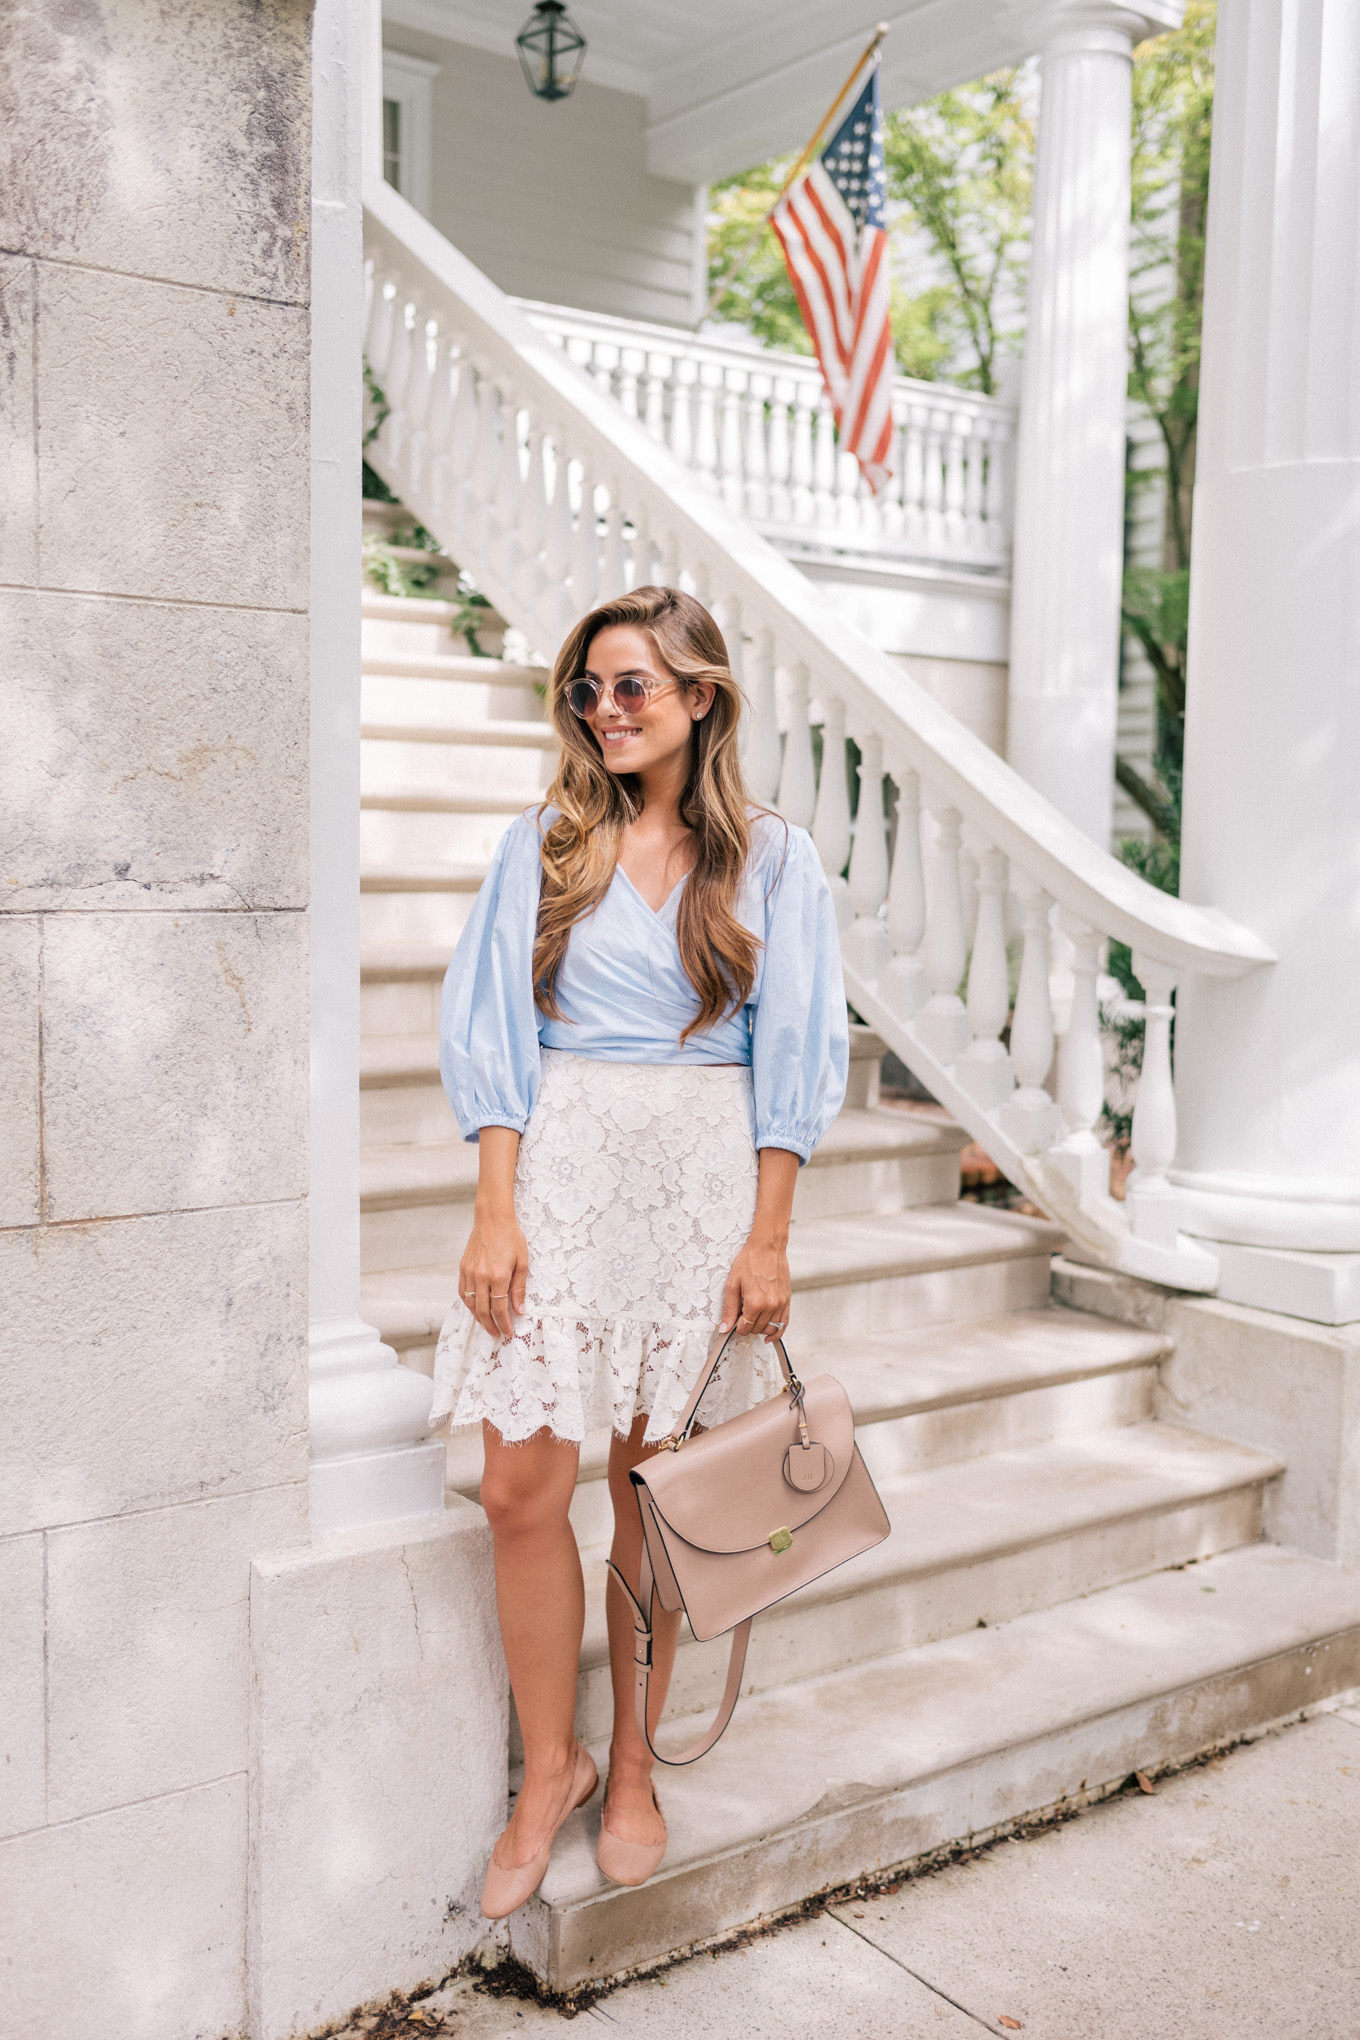 gmg-wrap-top-lace-skirt-1004371